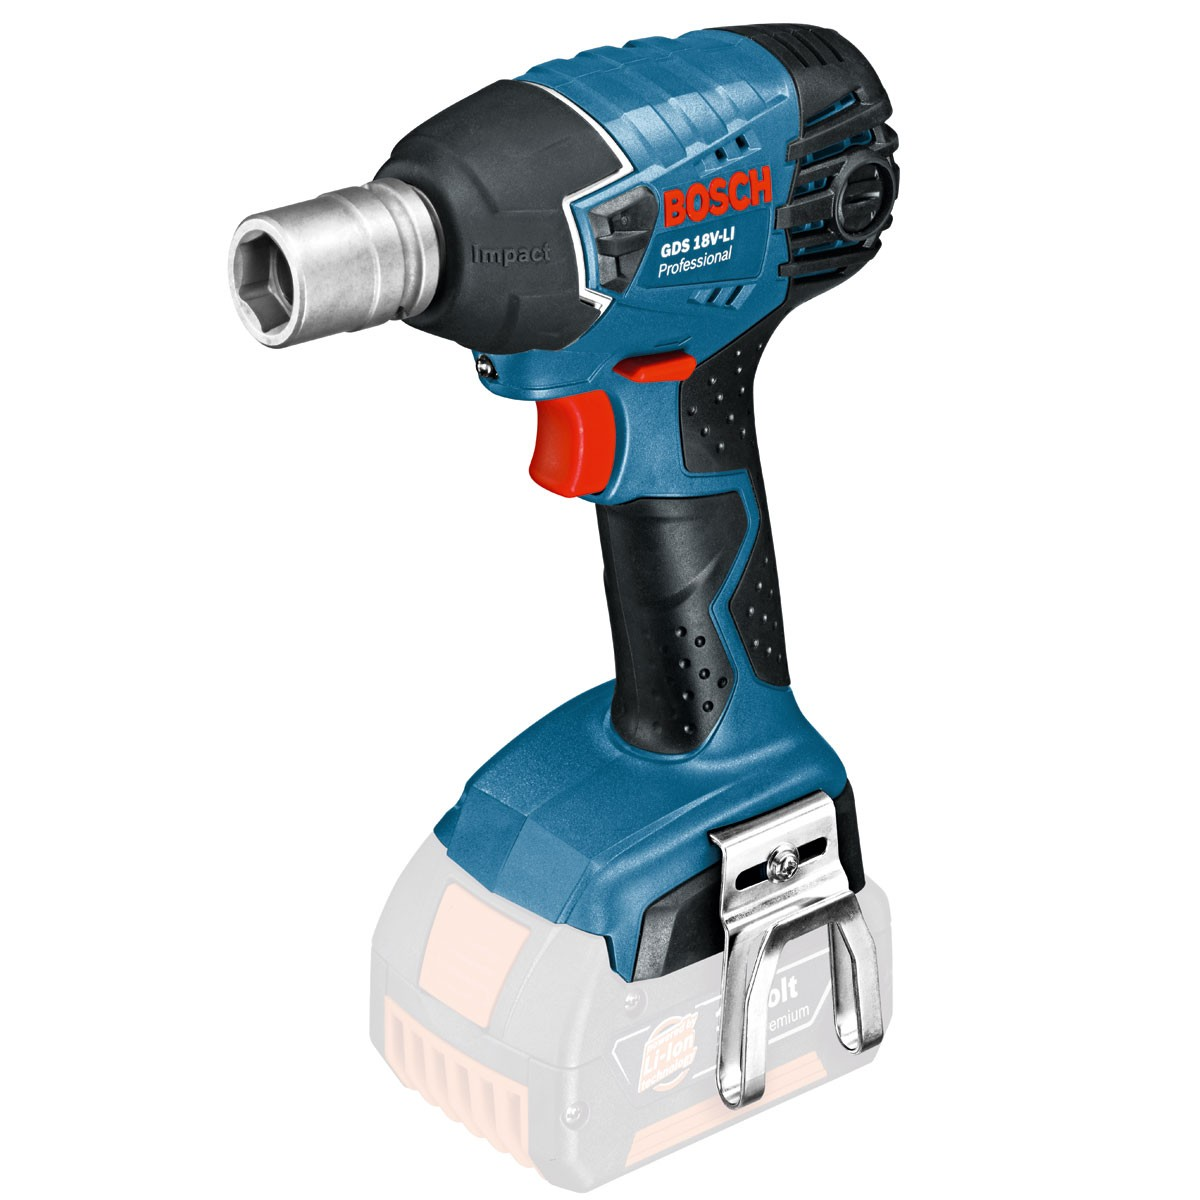 Bosch GDS 18 V-LI Cordless Impact Wrench Body Only